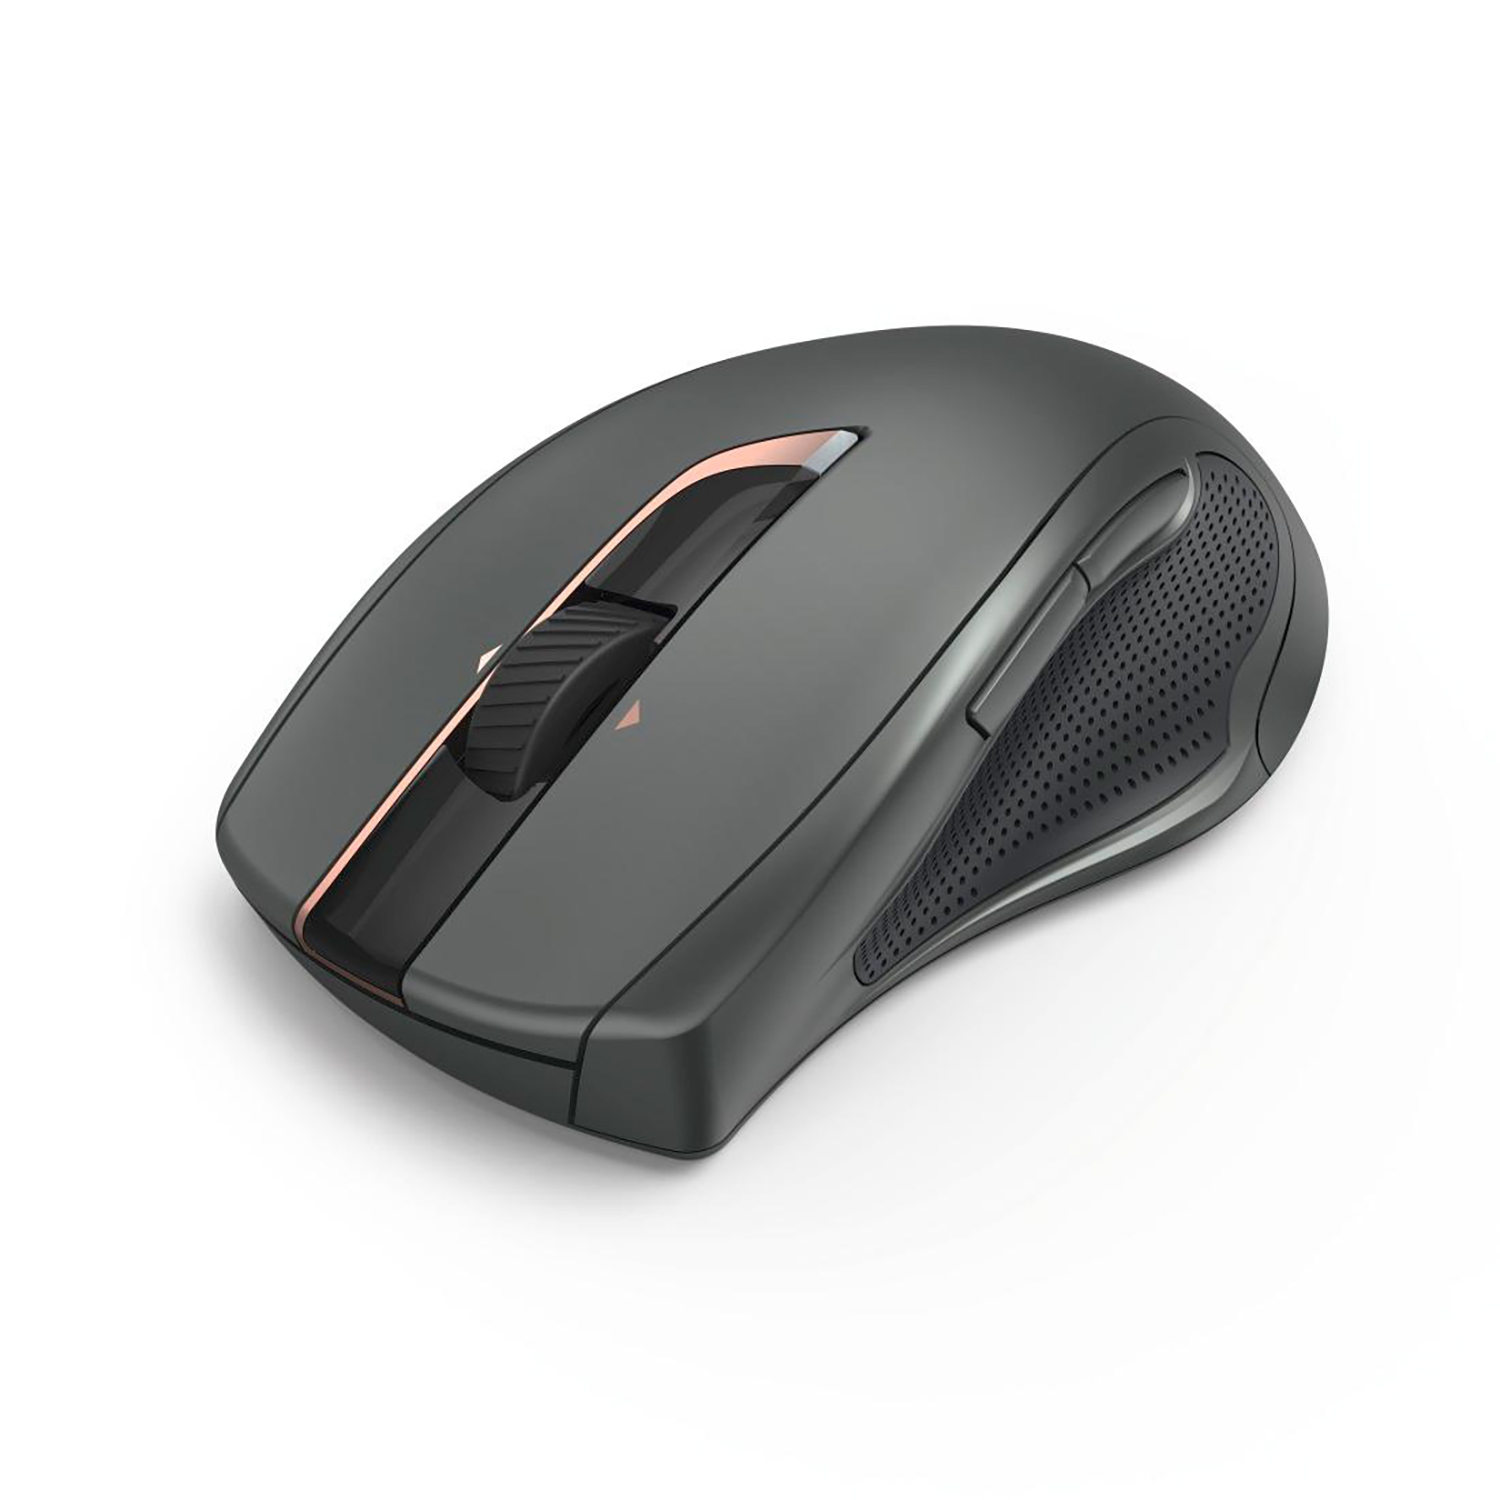 Wireless Hama Roma Mouse Optical Wireless 6 Button 1600dpi Right Handed Black Ref 00182672